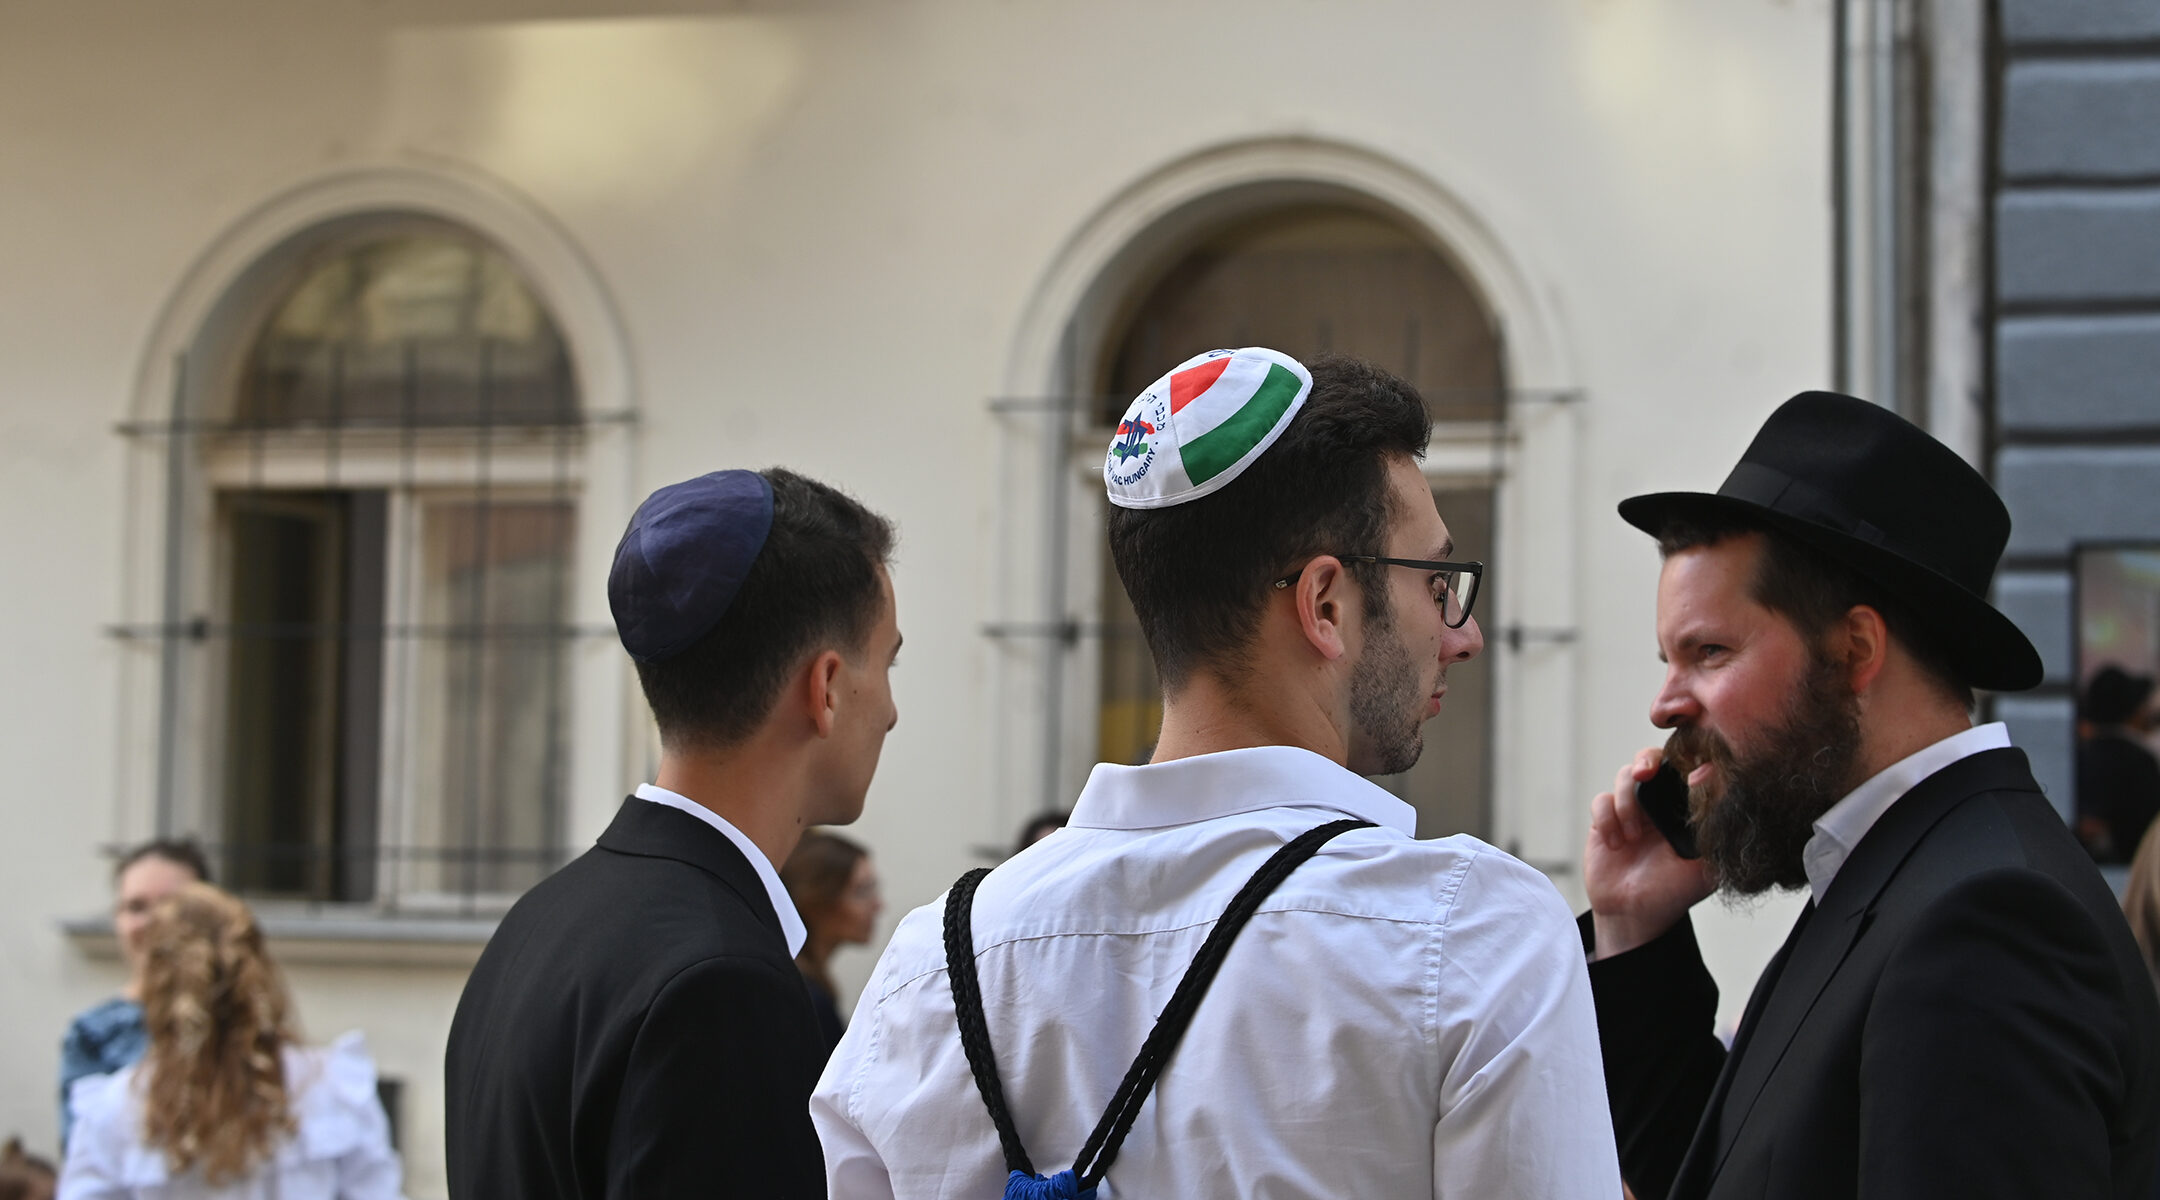 Hungarian Jews celebrate the opening of a new synagogue in Budapest on Aug. 27, 2021. (Cnaan Liphshiz)